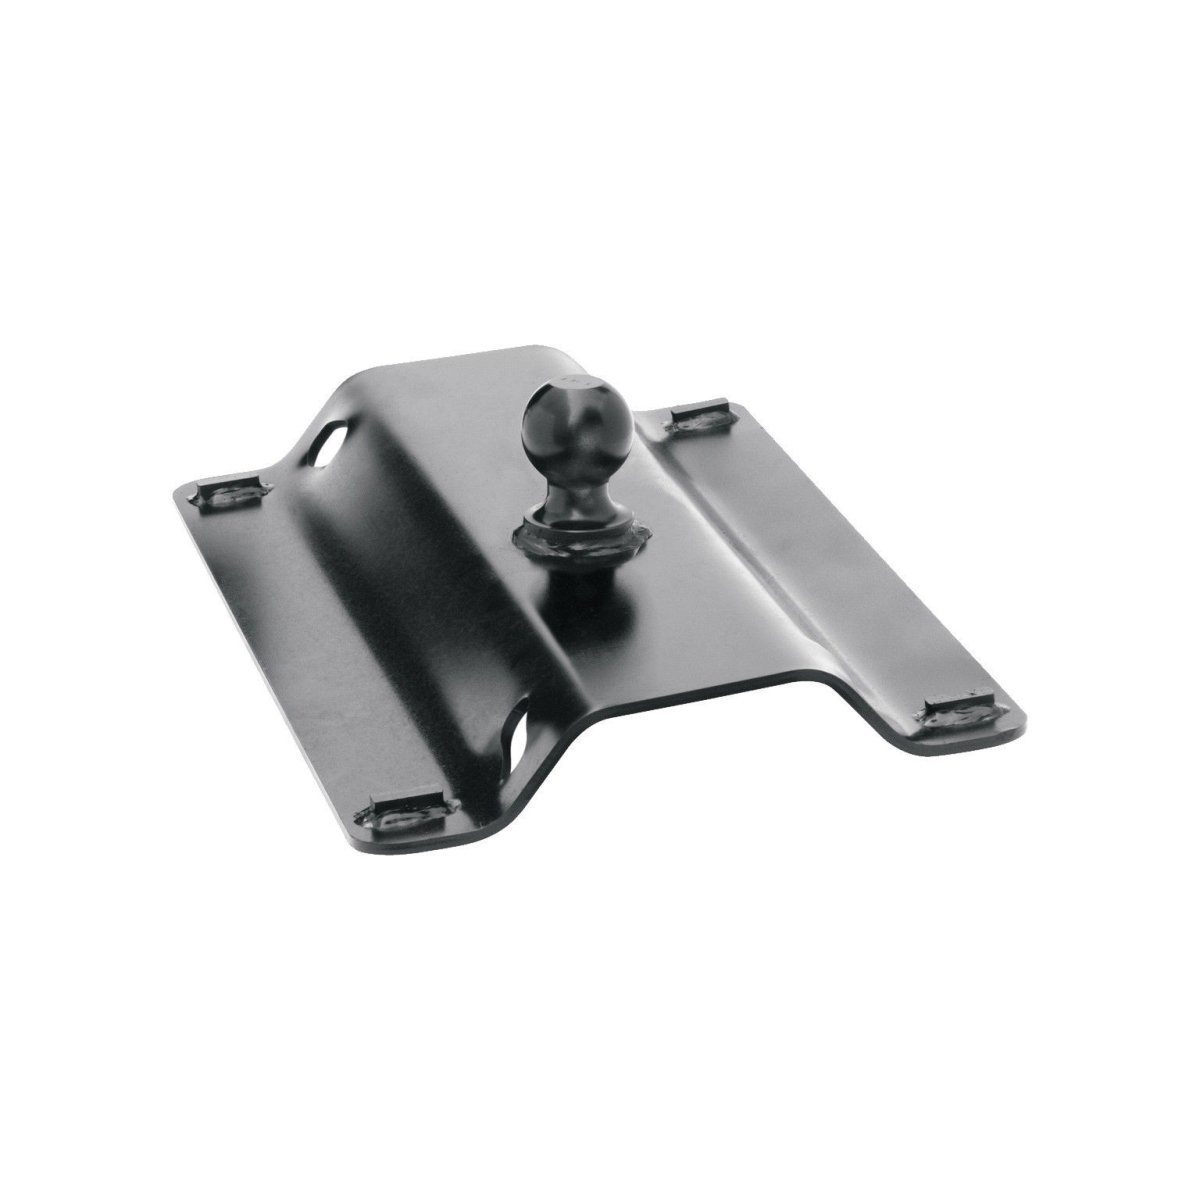 Reese 49080RTL Gooseneck Plate (Requires Rails and Installation Kit #30035)